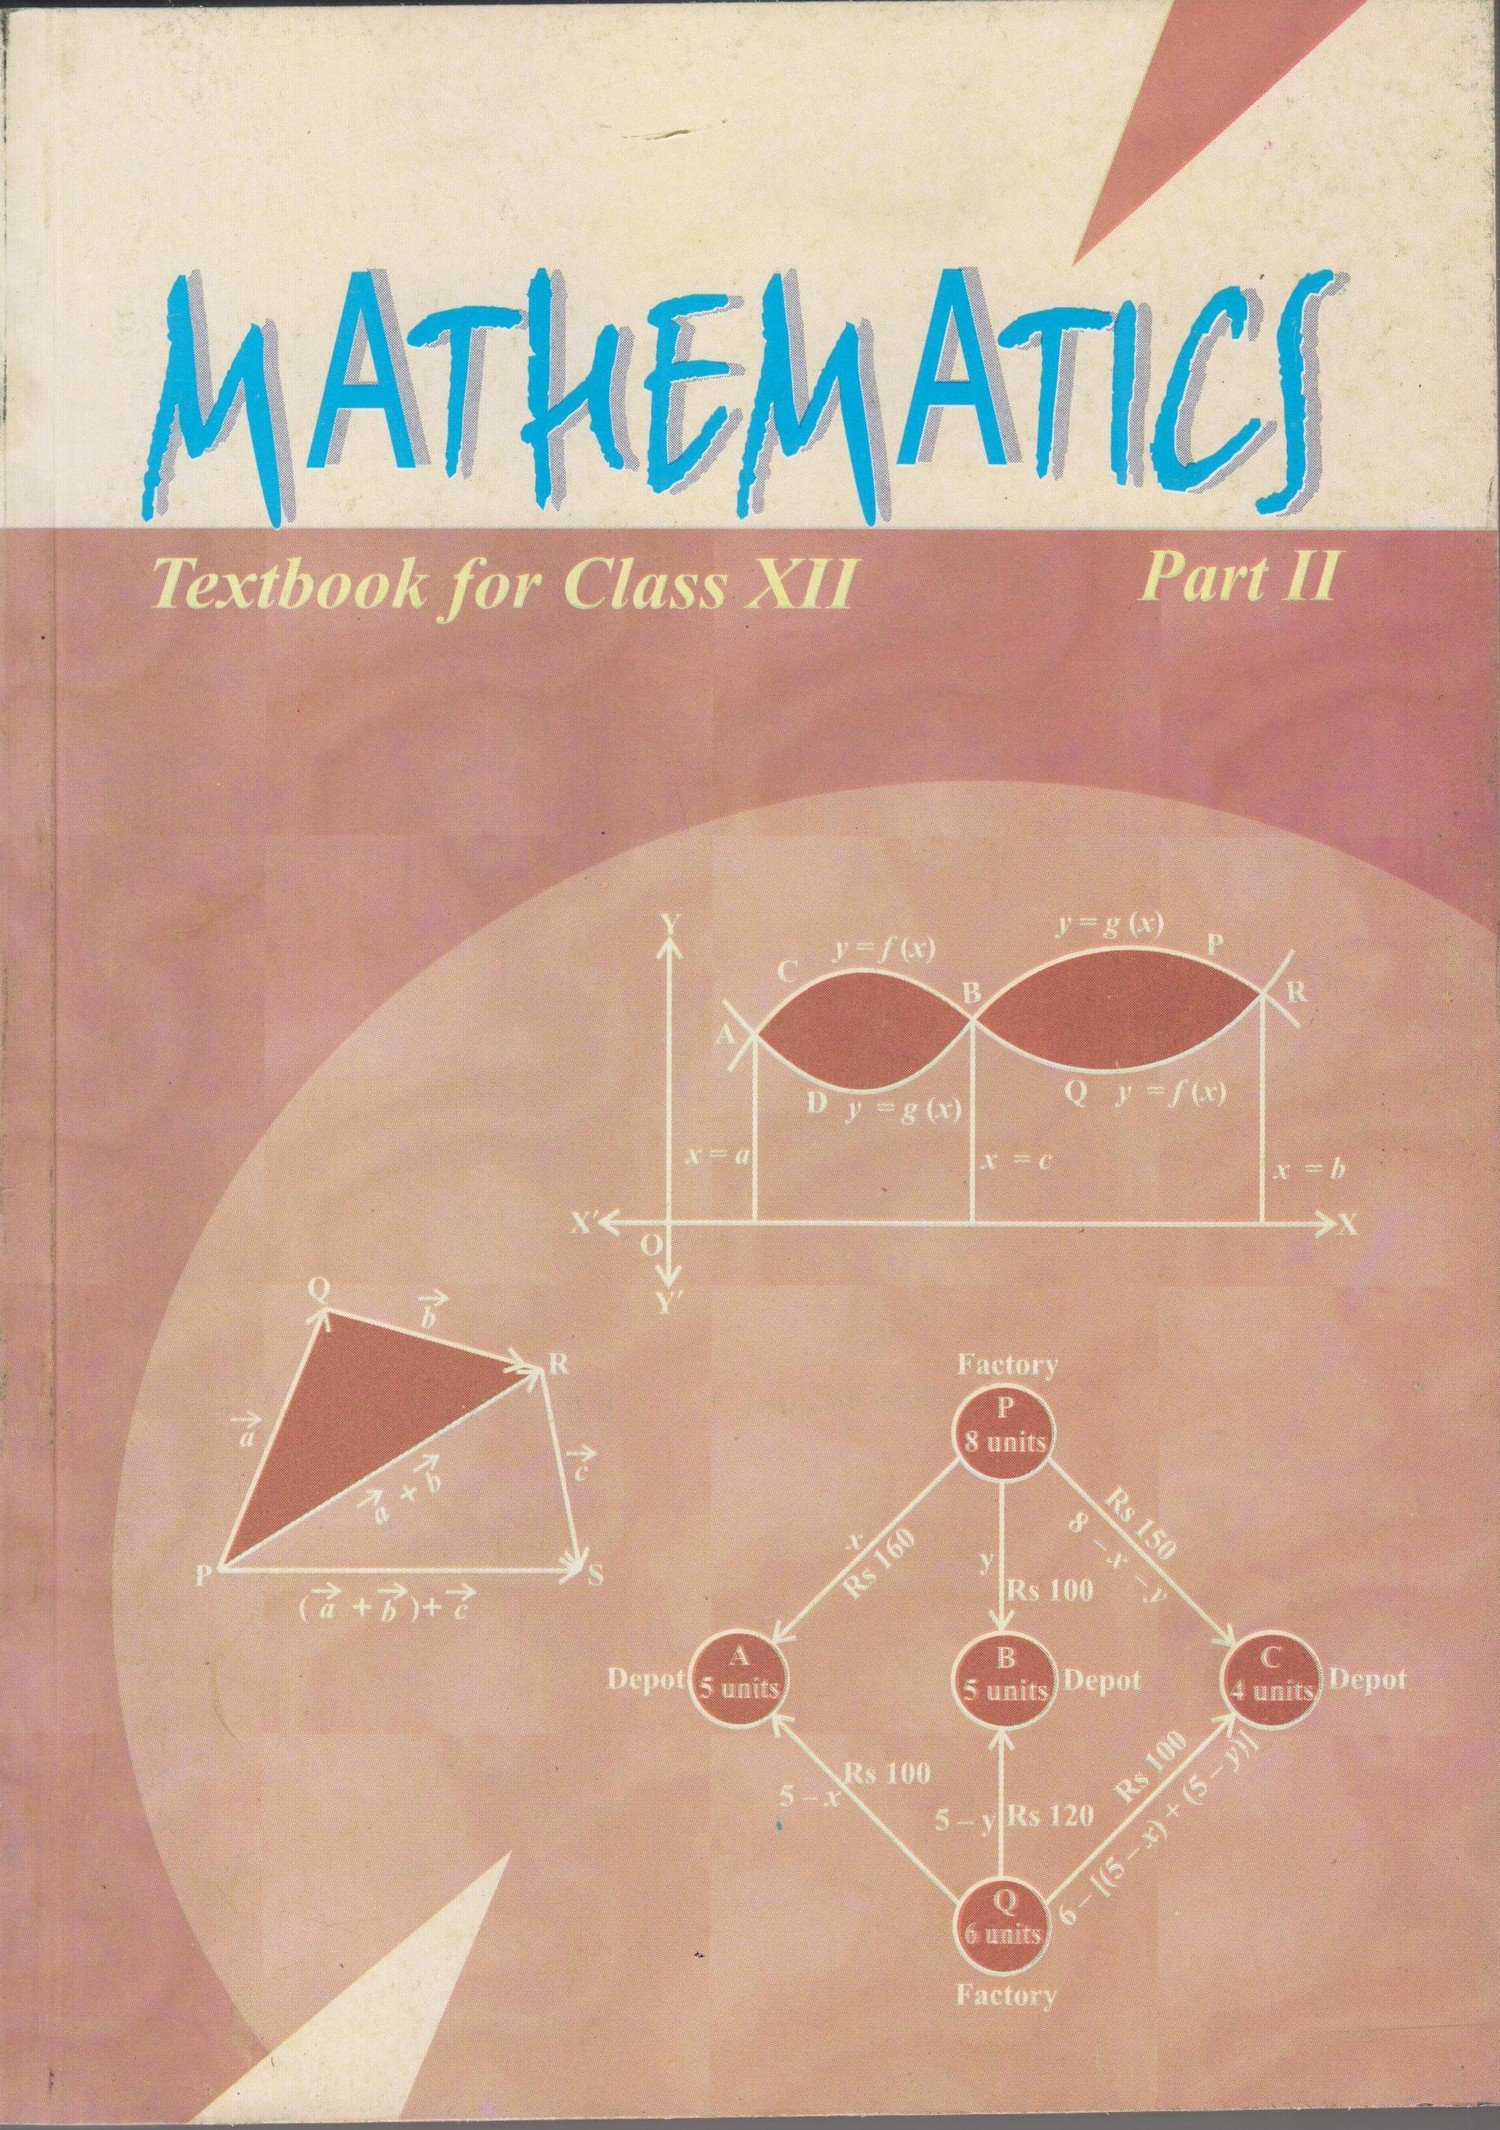 Mathematics Textbook for Class 12 Part - 2 - 12080: Amazon